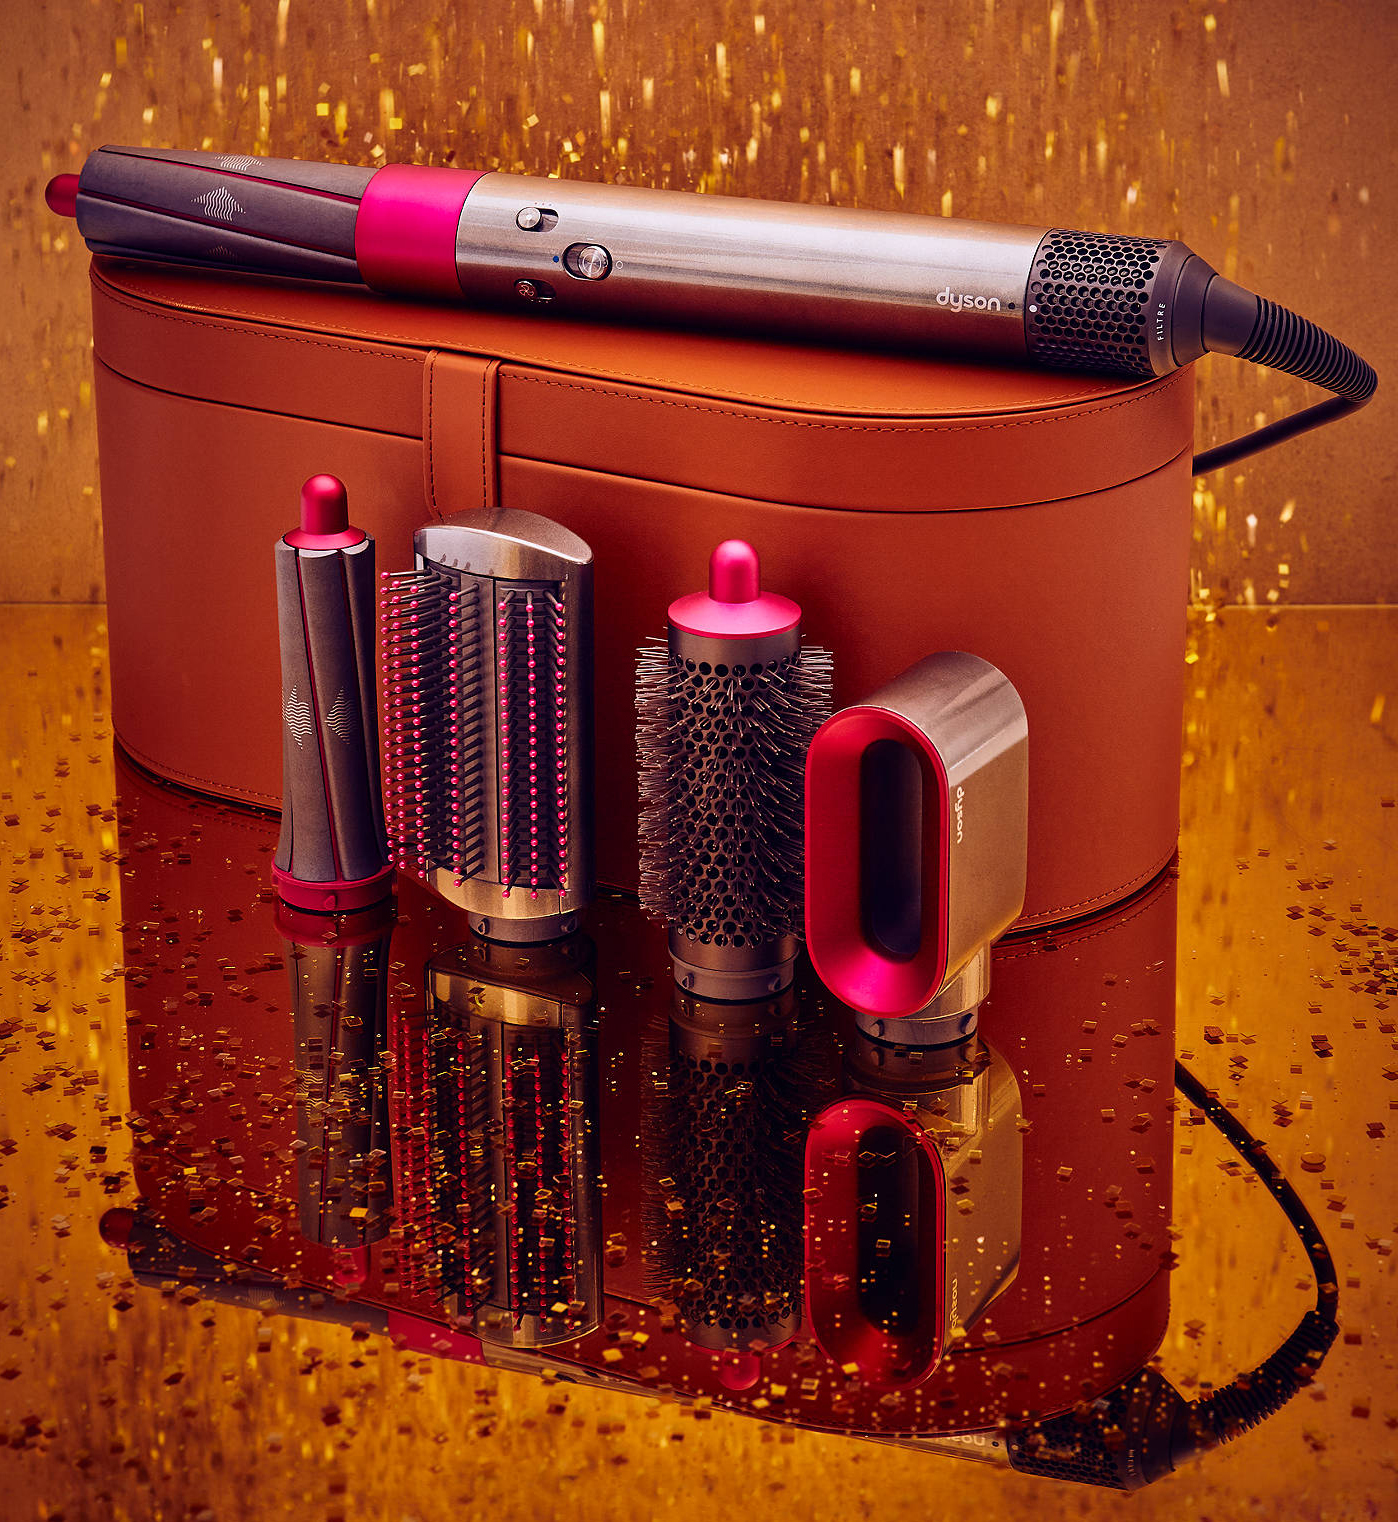 Dyson Airwrap Styler. Best Hairstylers 2020. Gift ideas for beauty addict 2020. Christmas Gift Ideas for Mum 2020. Beauty Gift Ideas for Mum. Best Deal on Dyson Airwrap 2020.